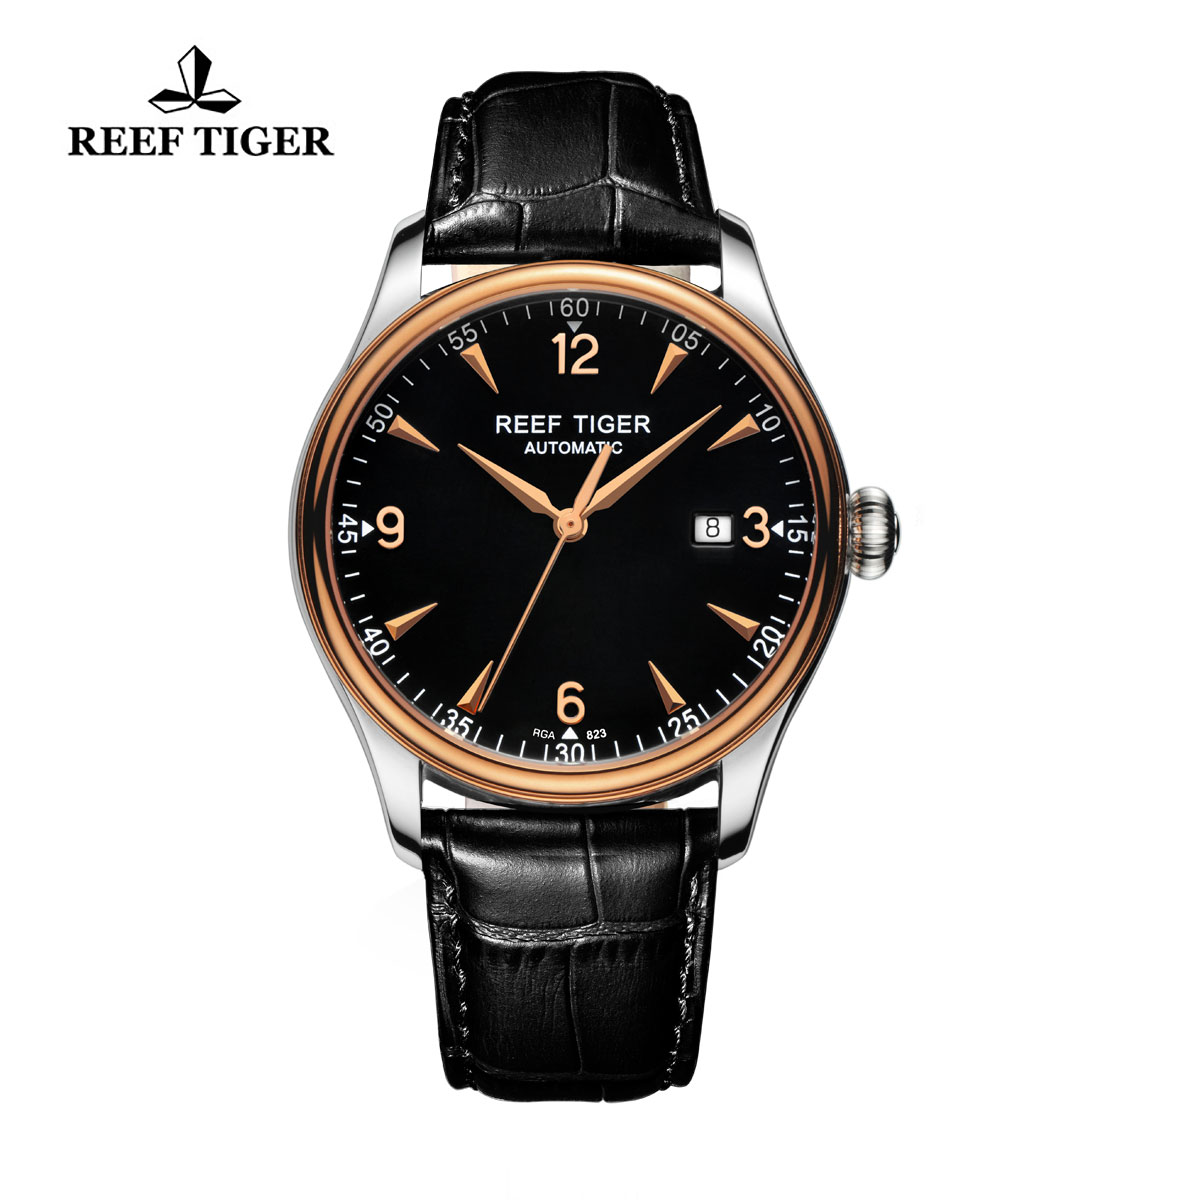 Reef Tiger Heritage Dress Automatic Watch Black Dial Calfskin Leather Strap RGA823-PBB